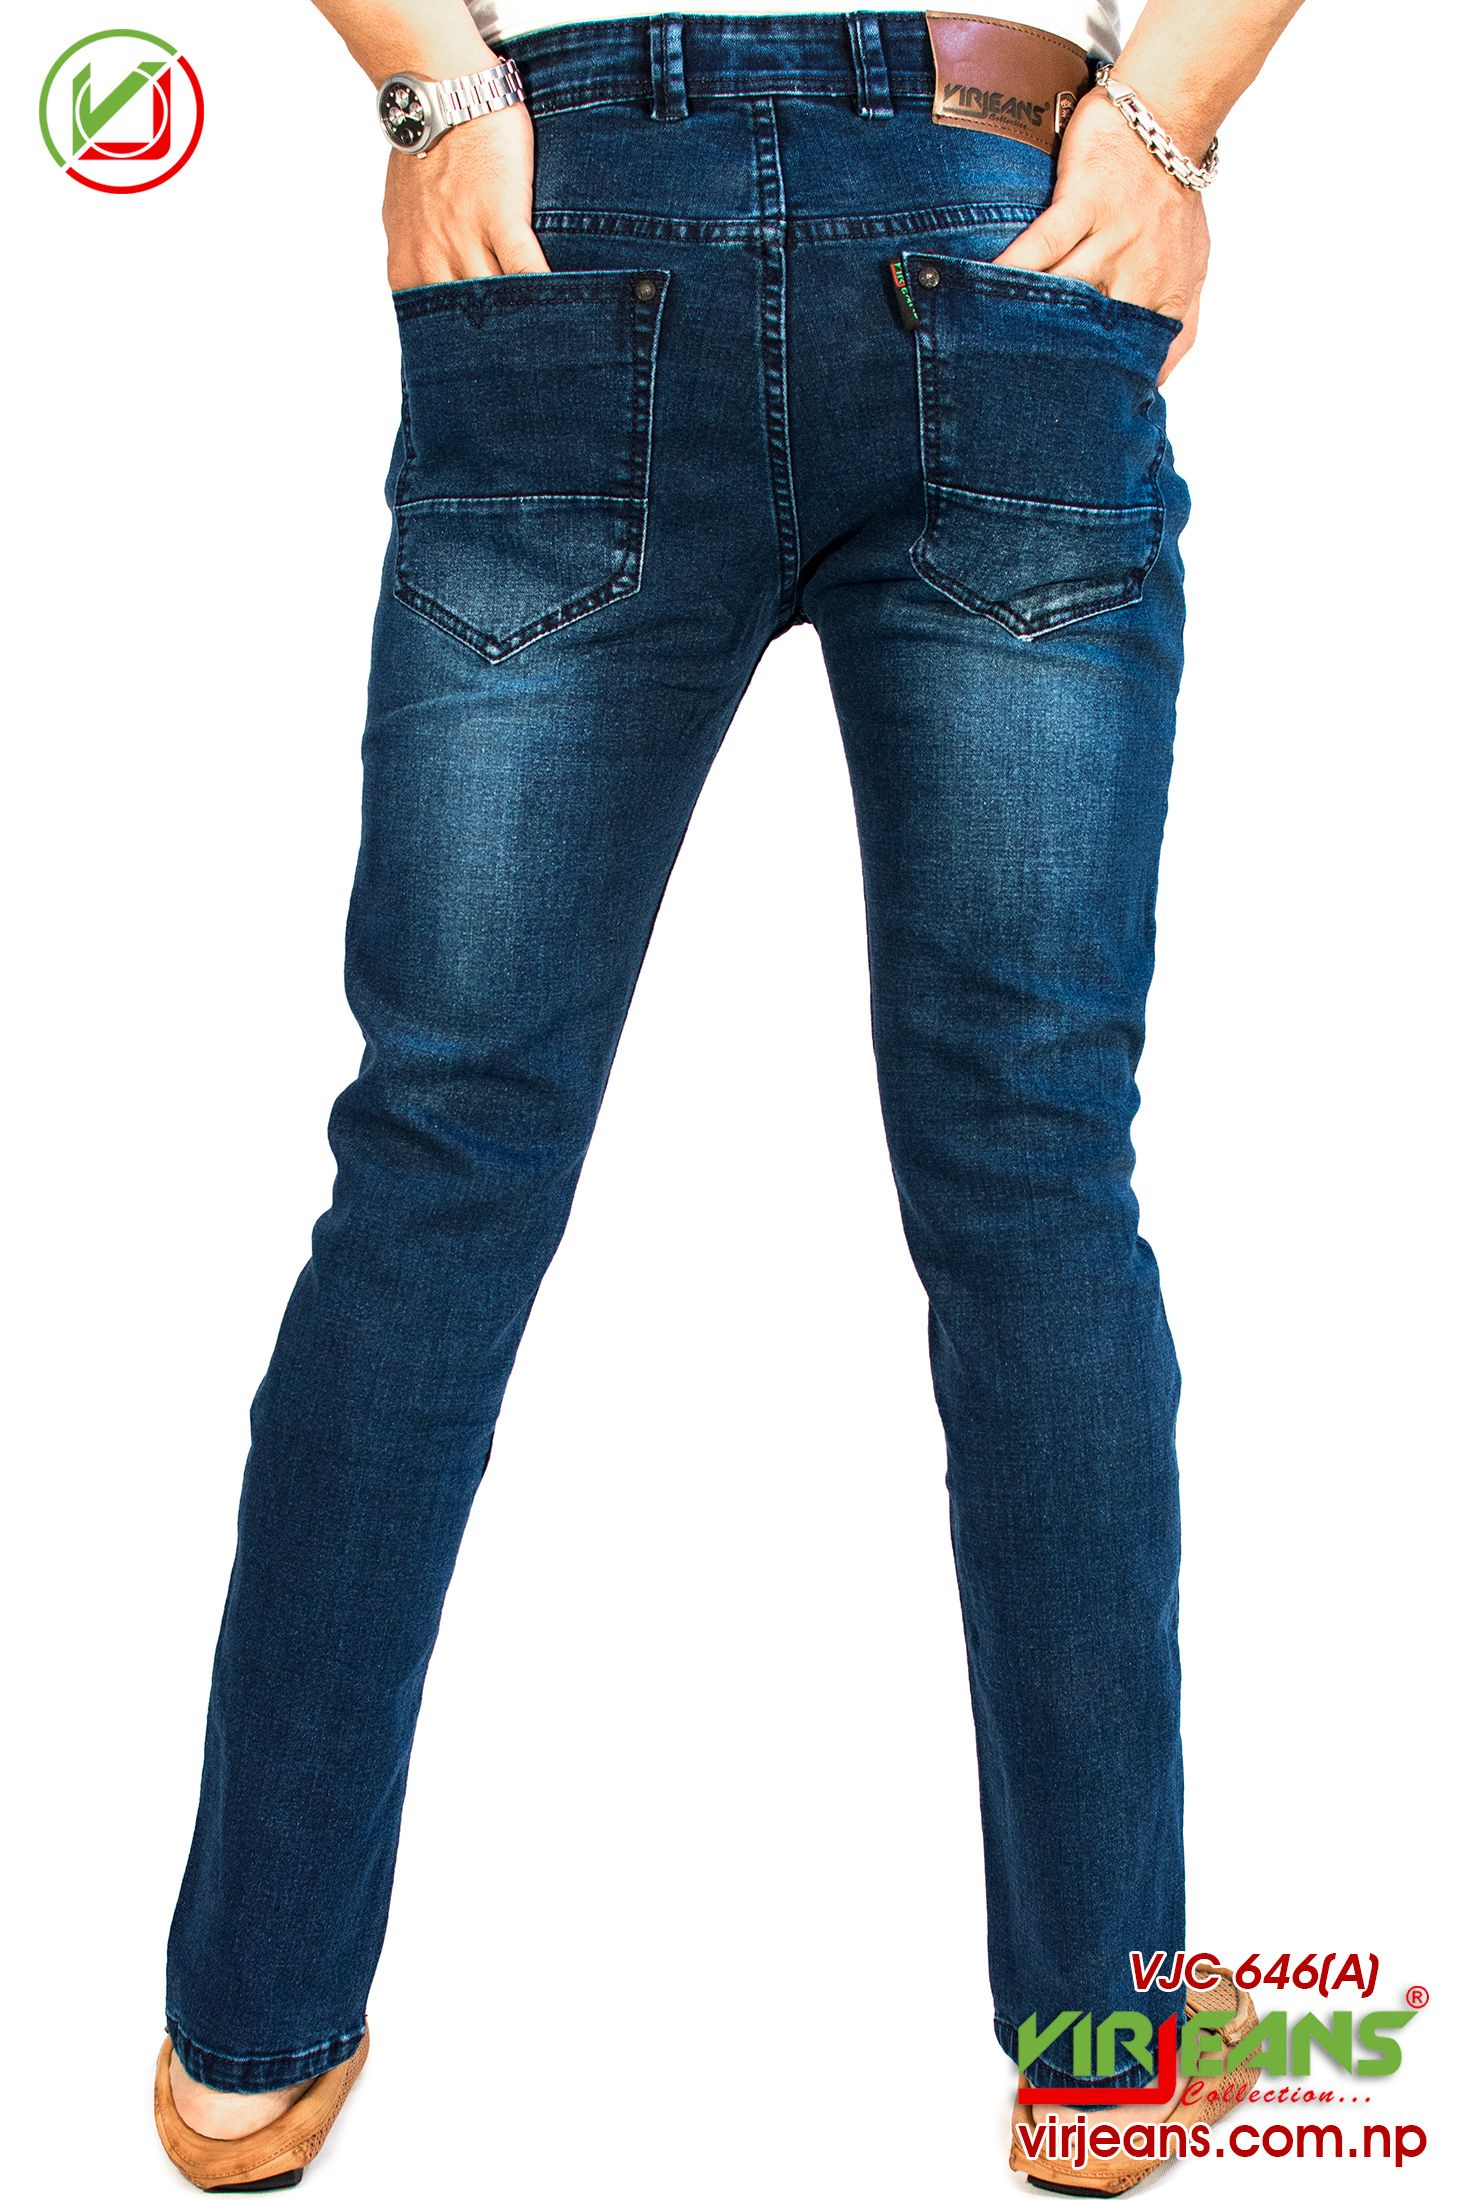 0de85a92ee Jeans in Nepal, Nepali Jeans Clothes, Denim Choose Pant, Made in Nepal  clothes, Nepali fashion brands, international clothing brands in nepal, ...